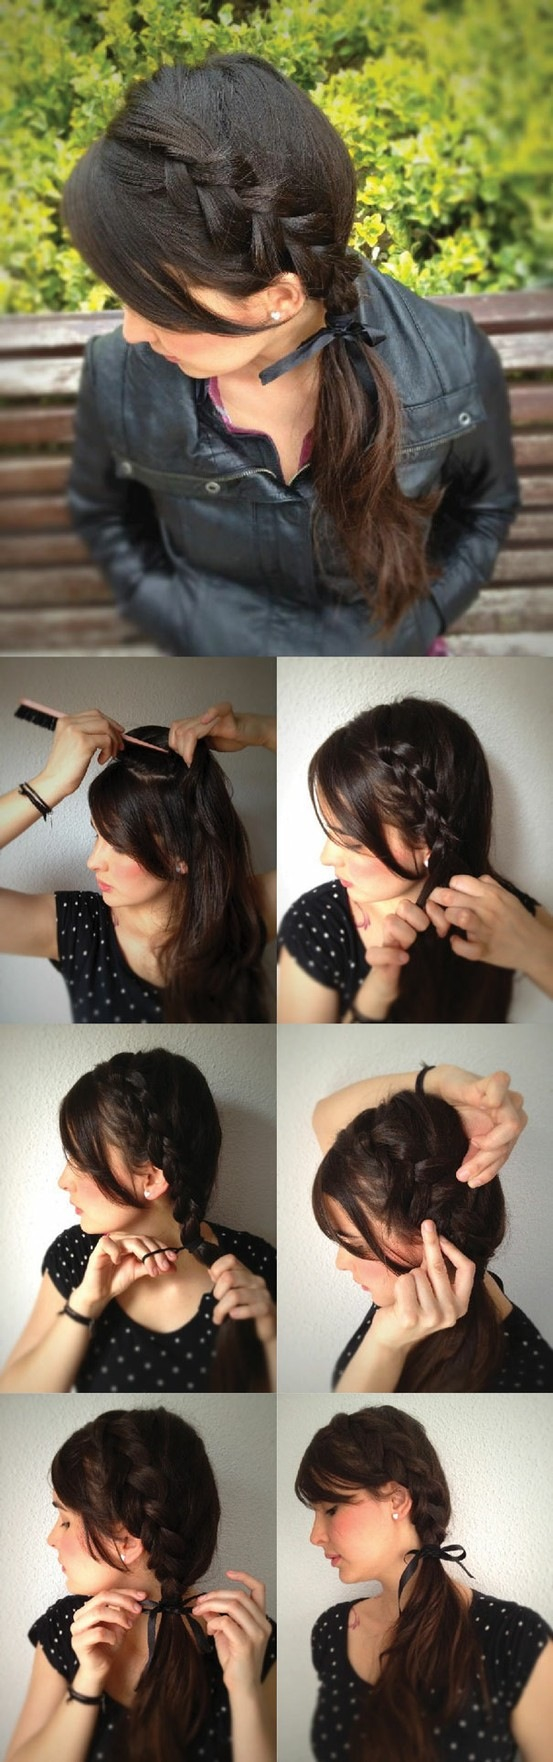 braid + bow = sweet